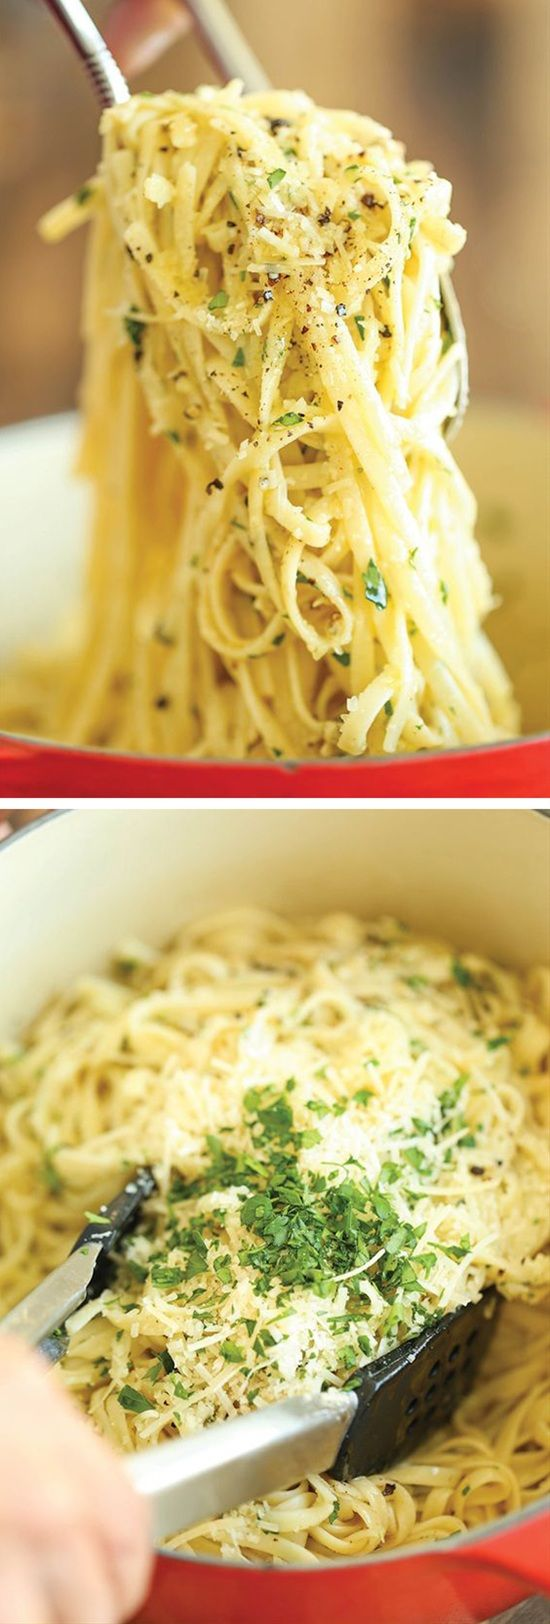 Need more healthy meal recipes that you can make in less than 30 minutes? The good news is that even when youre eating healthy you can still eat pasta. This list includes the best pasta recipes that are delicious and healthy. Just make sure to cook with organic ingredients and use whole-wheat pasta to get more protein and fiber.